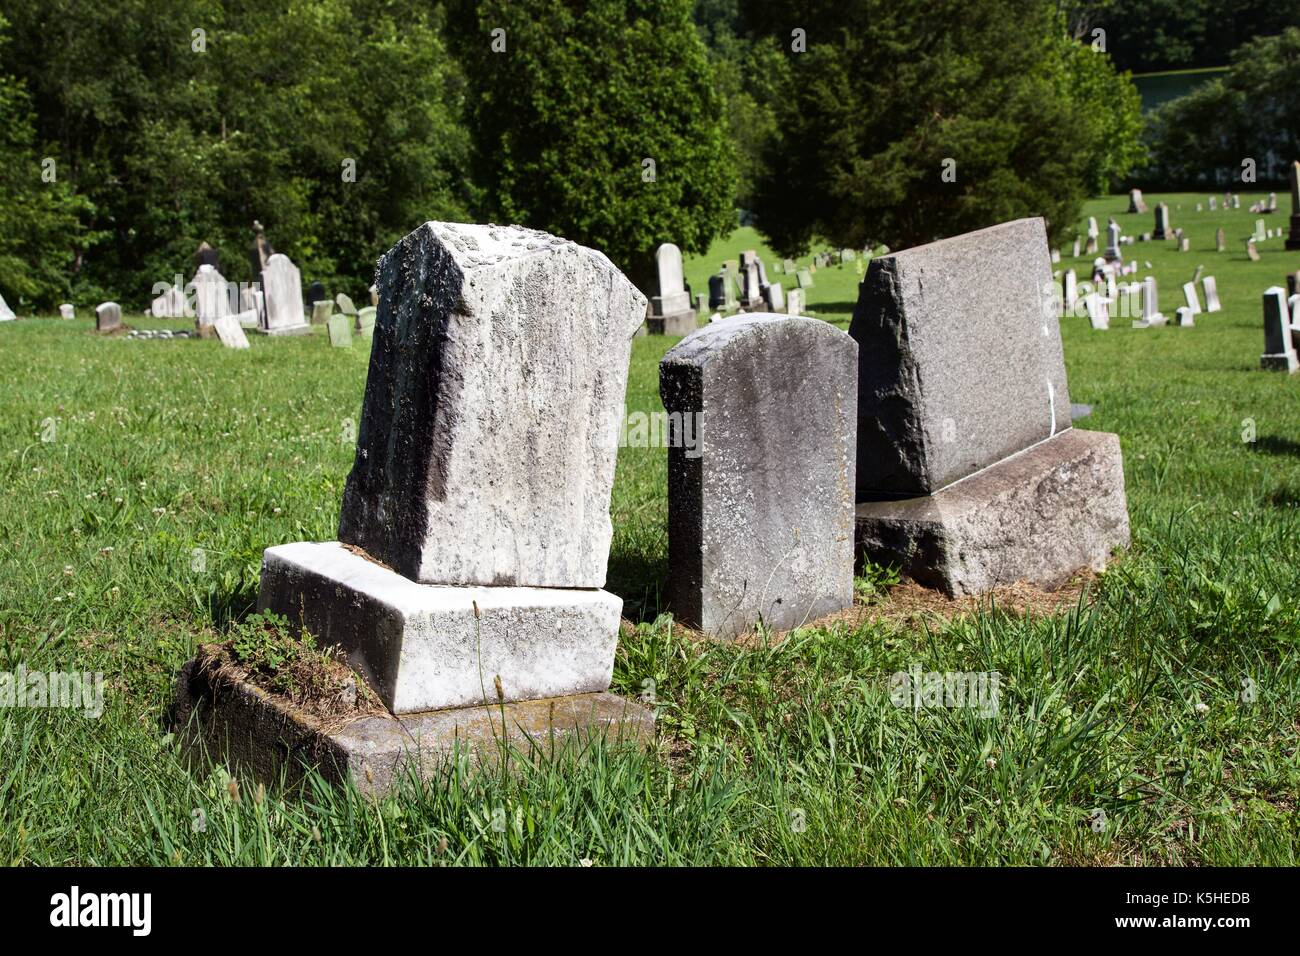 Old headstone - Stock Image